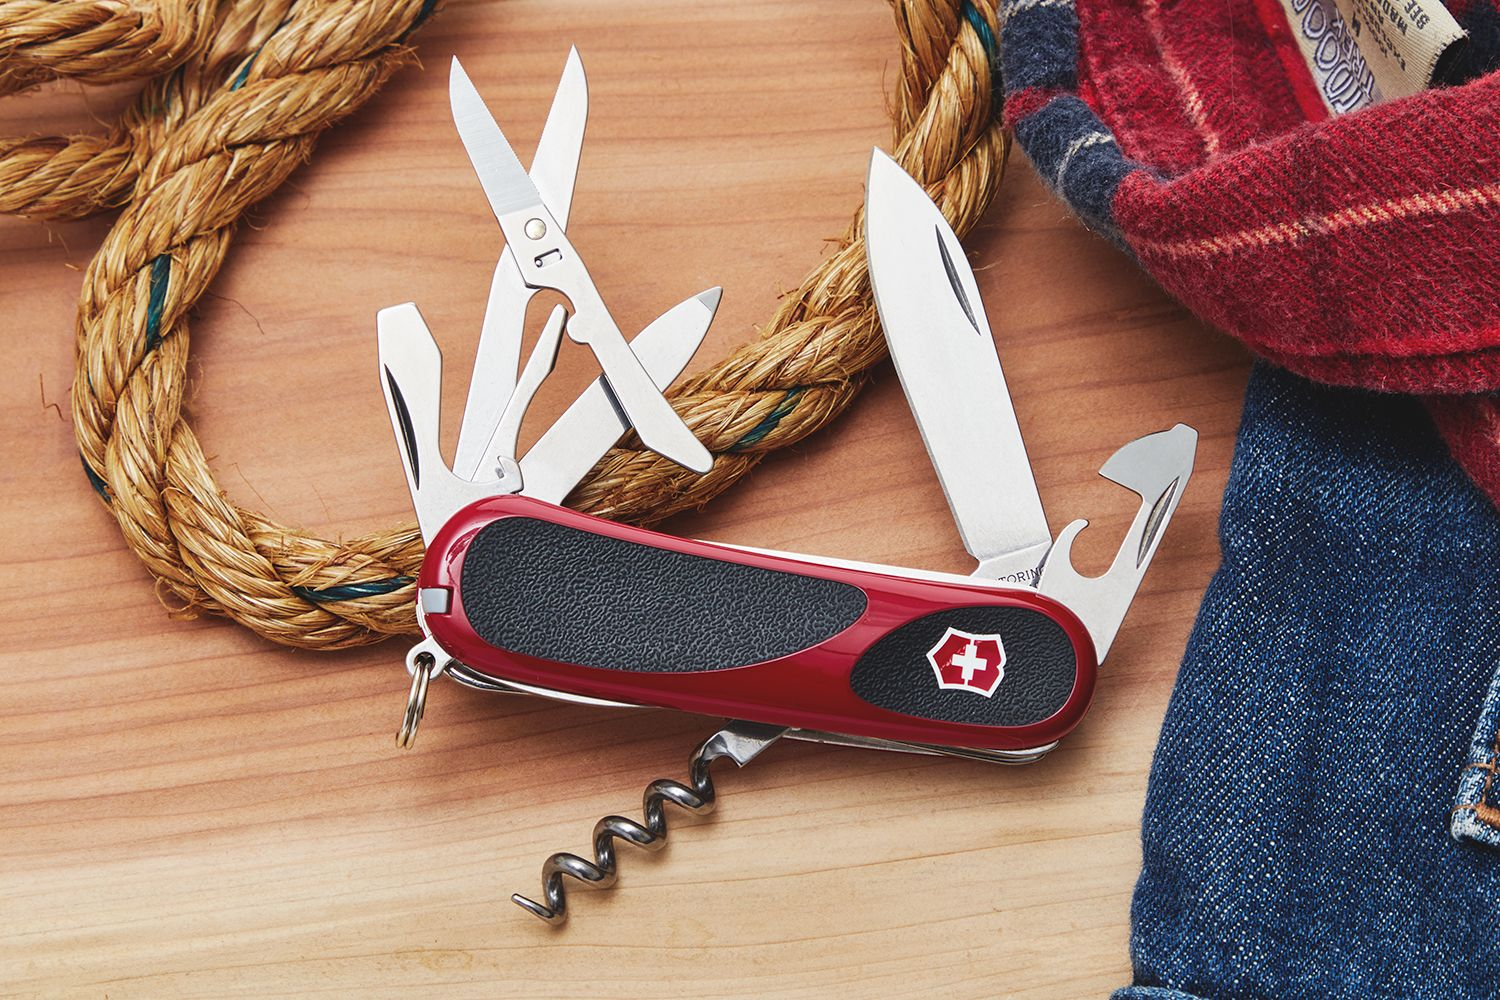 Victorinox Swiss Army Evogrip 14 pocket knife balanced on a coil of rope